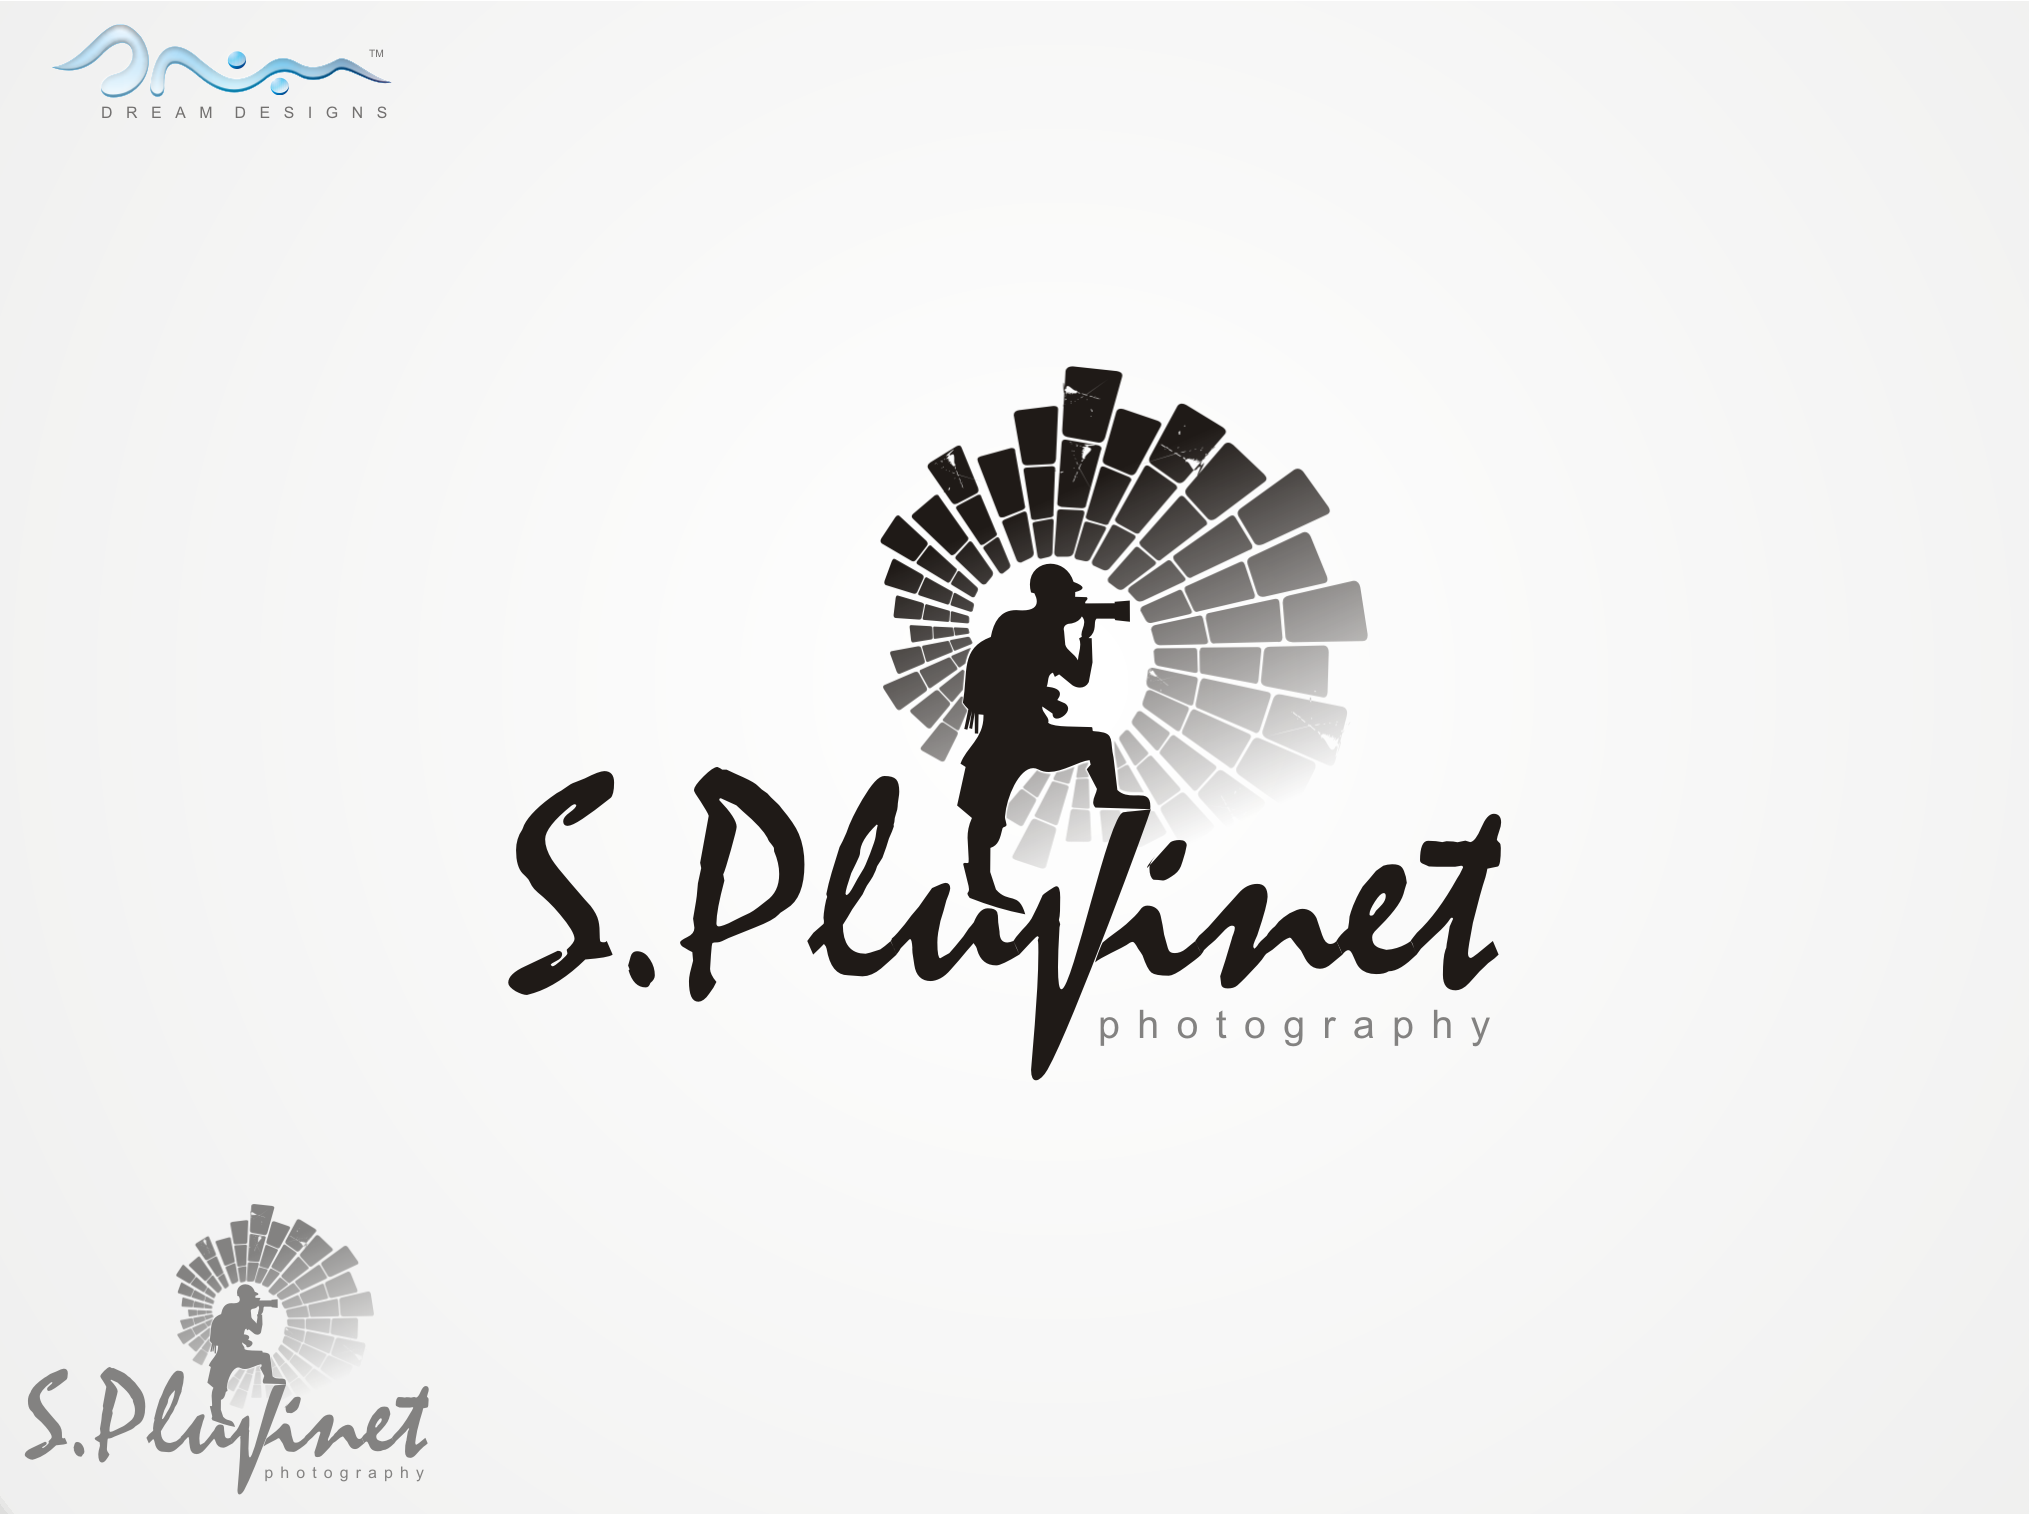 logo and business card for Sébastien Pluvinet or S. Pluvinet or SPLUVINET or Spluvinet etc. (small or capital letters)